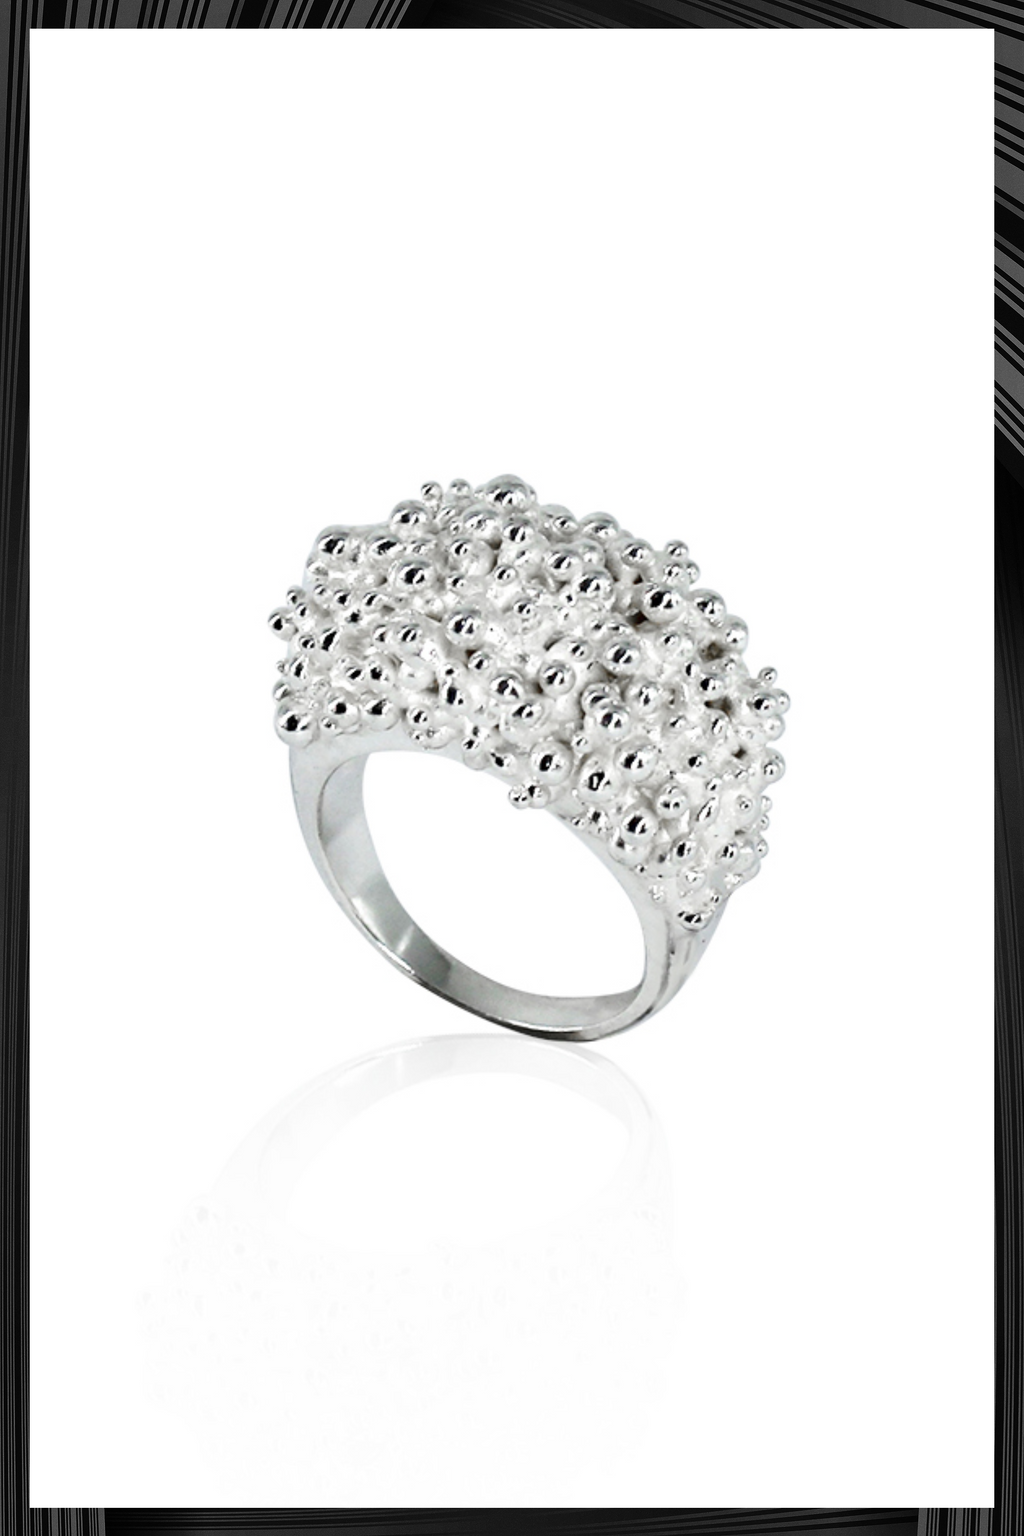 Silver Cluster Ring | Free Delivery - 4-5 Week Shipping